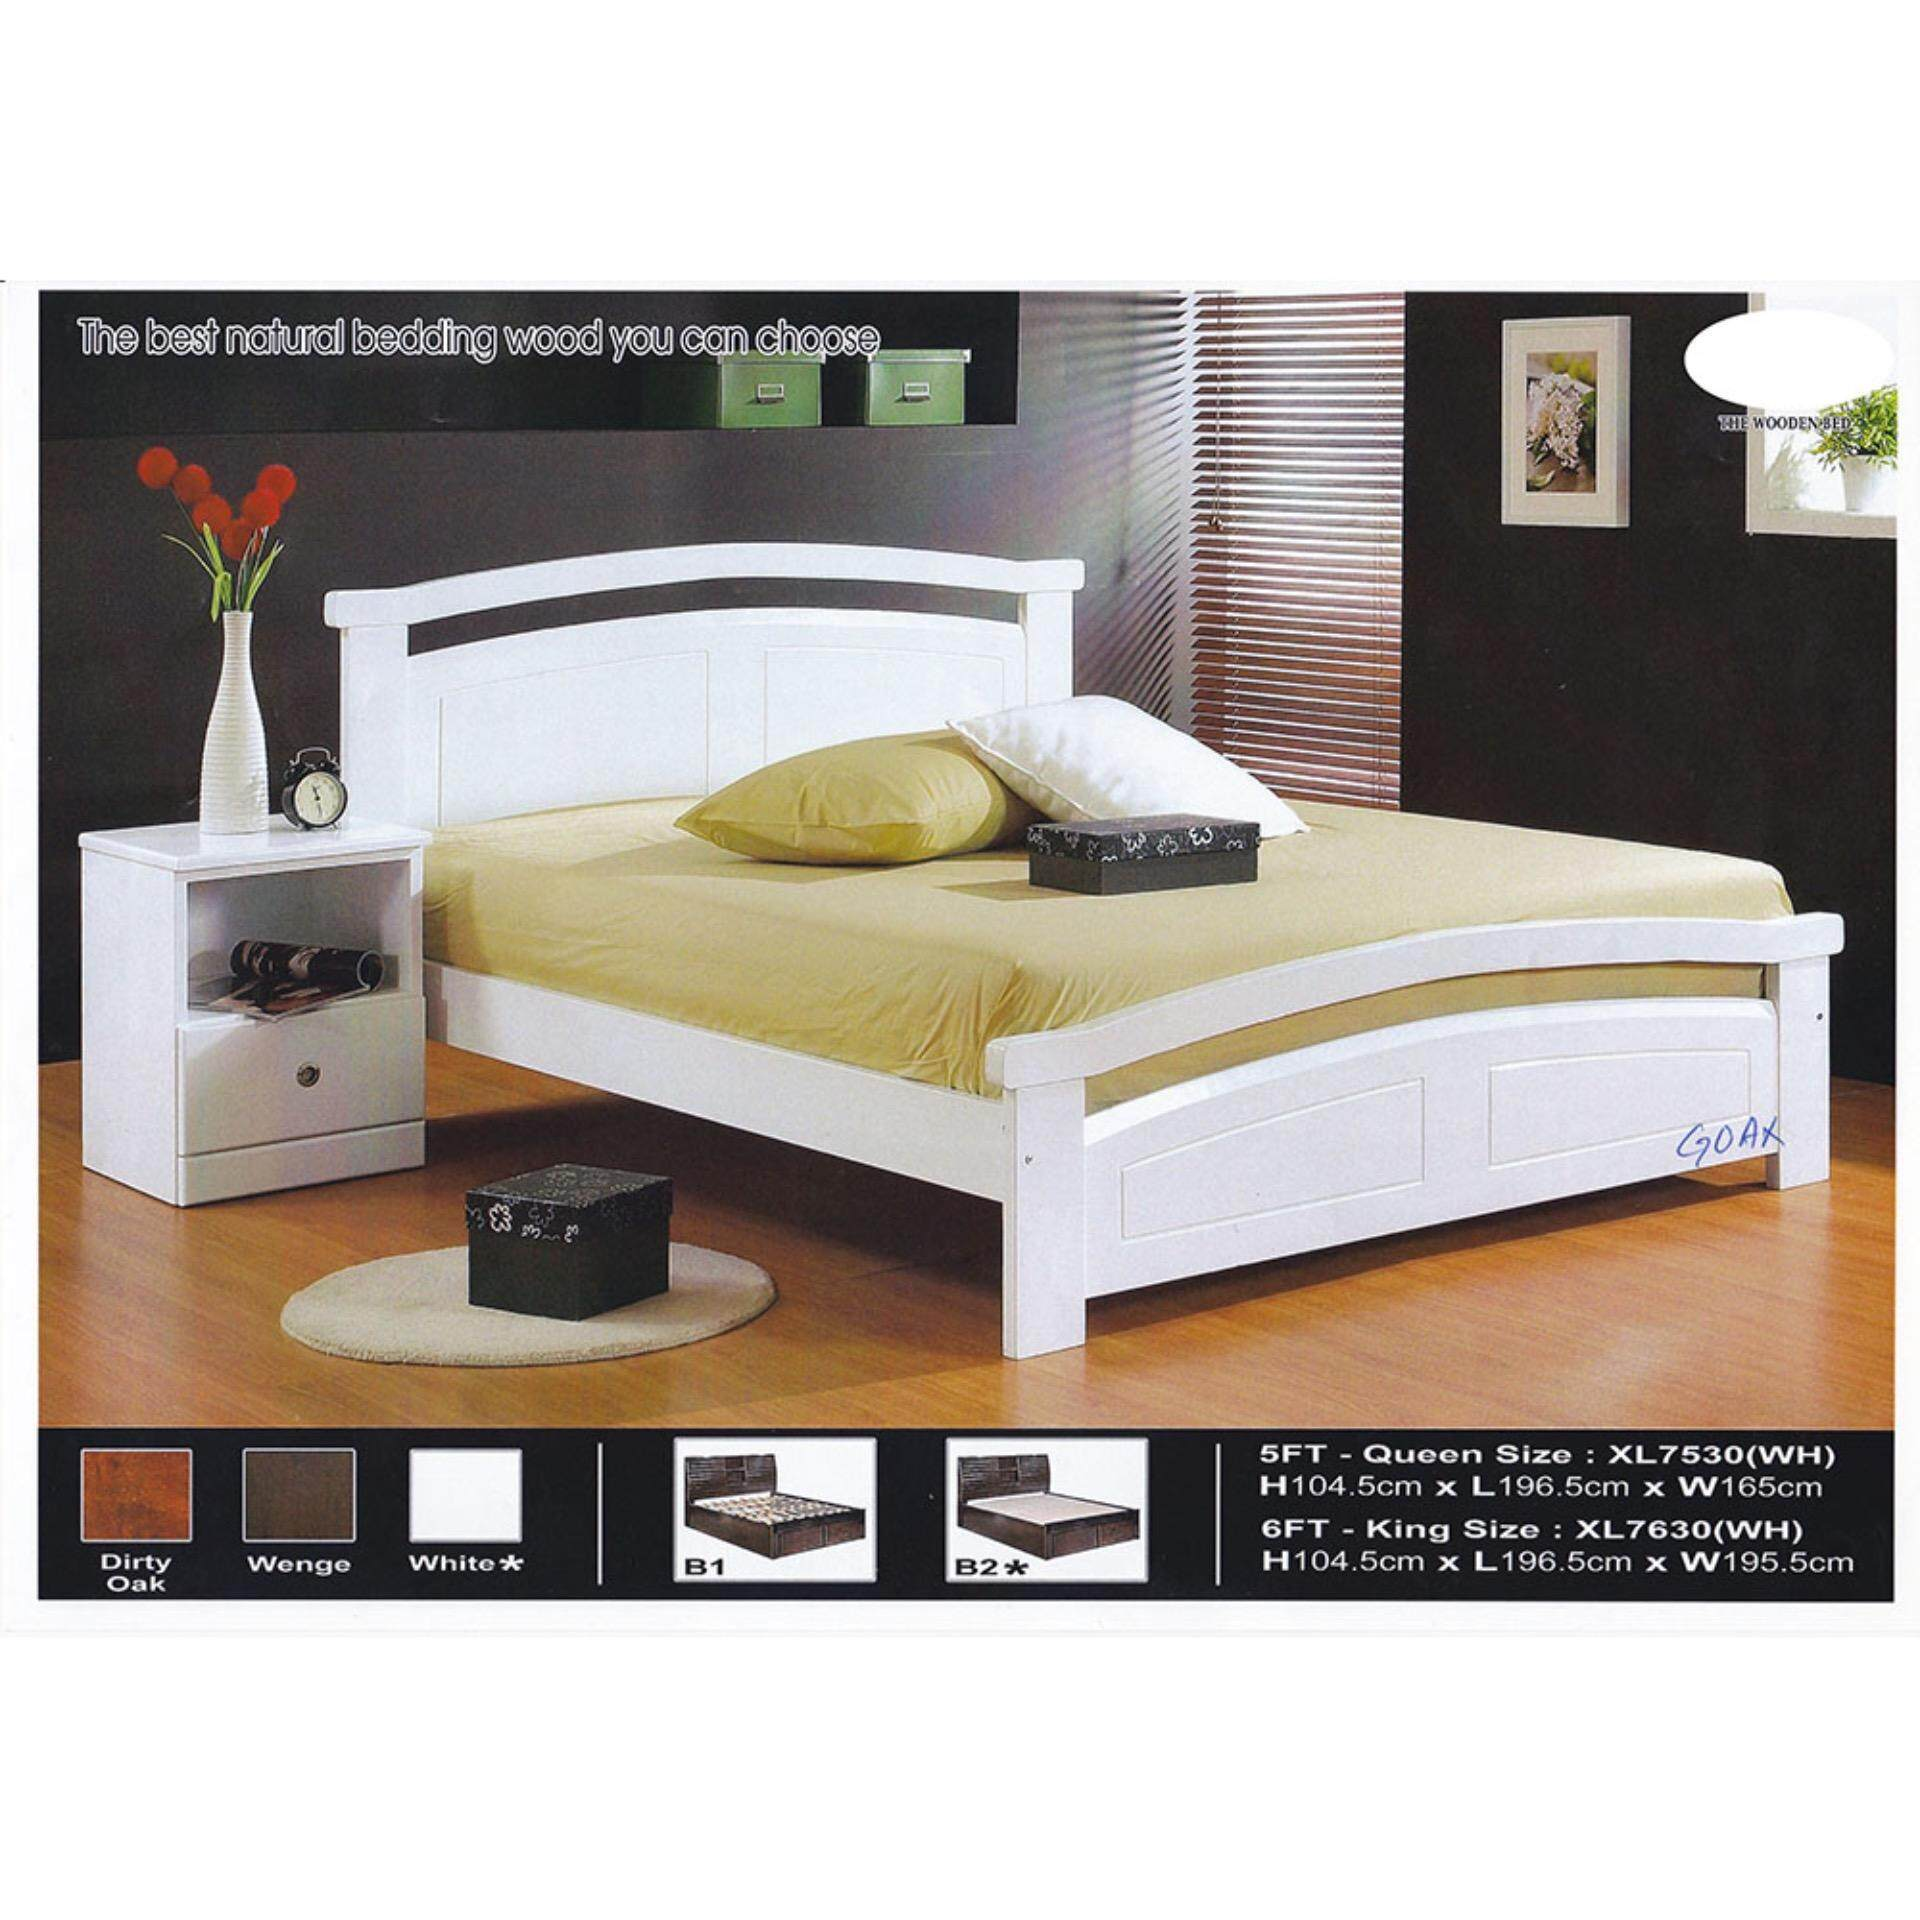 Solid Wood Strong Queen Size Wooden Bed Frame L1965MM X W1650MM X H1045MM Pre-Order 2 Week